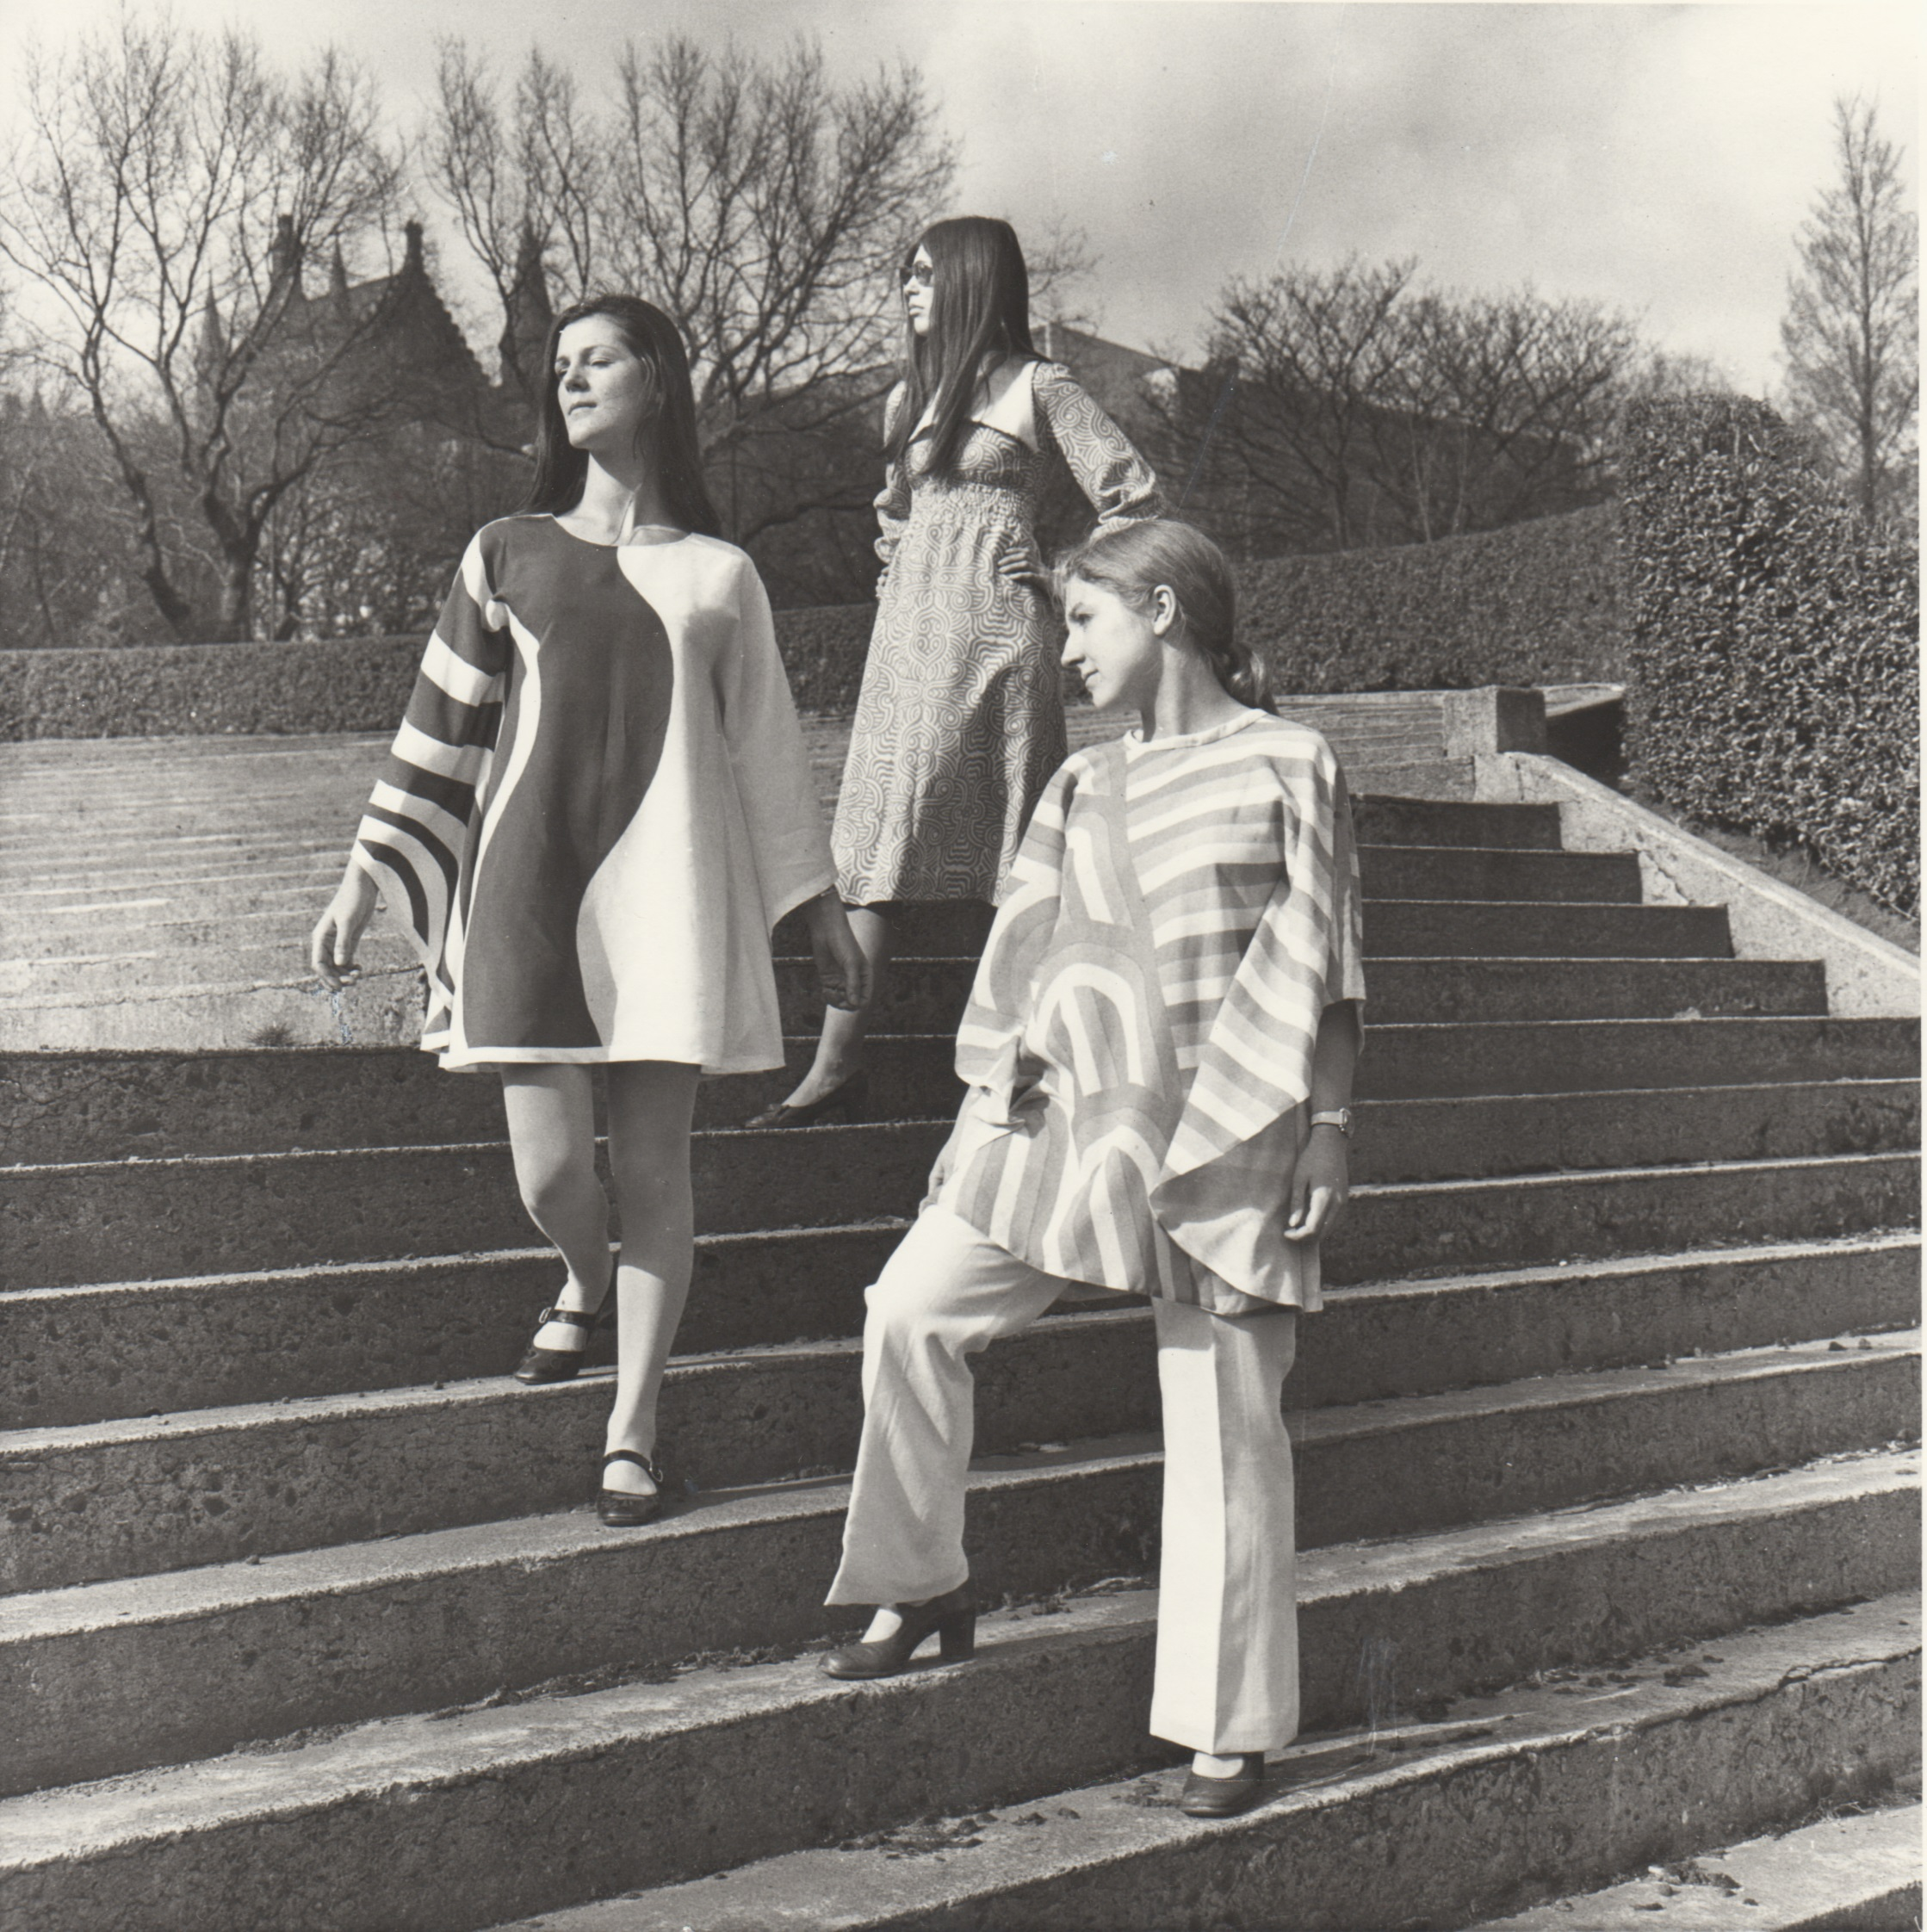 GSAA P/1/2413 Photograph of students modelling garments for a fashion shoot in Kelvingrove Park, 1960s